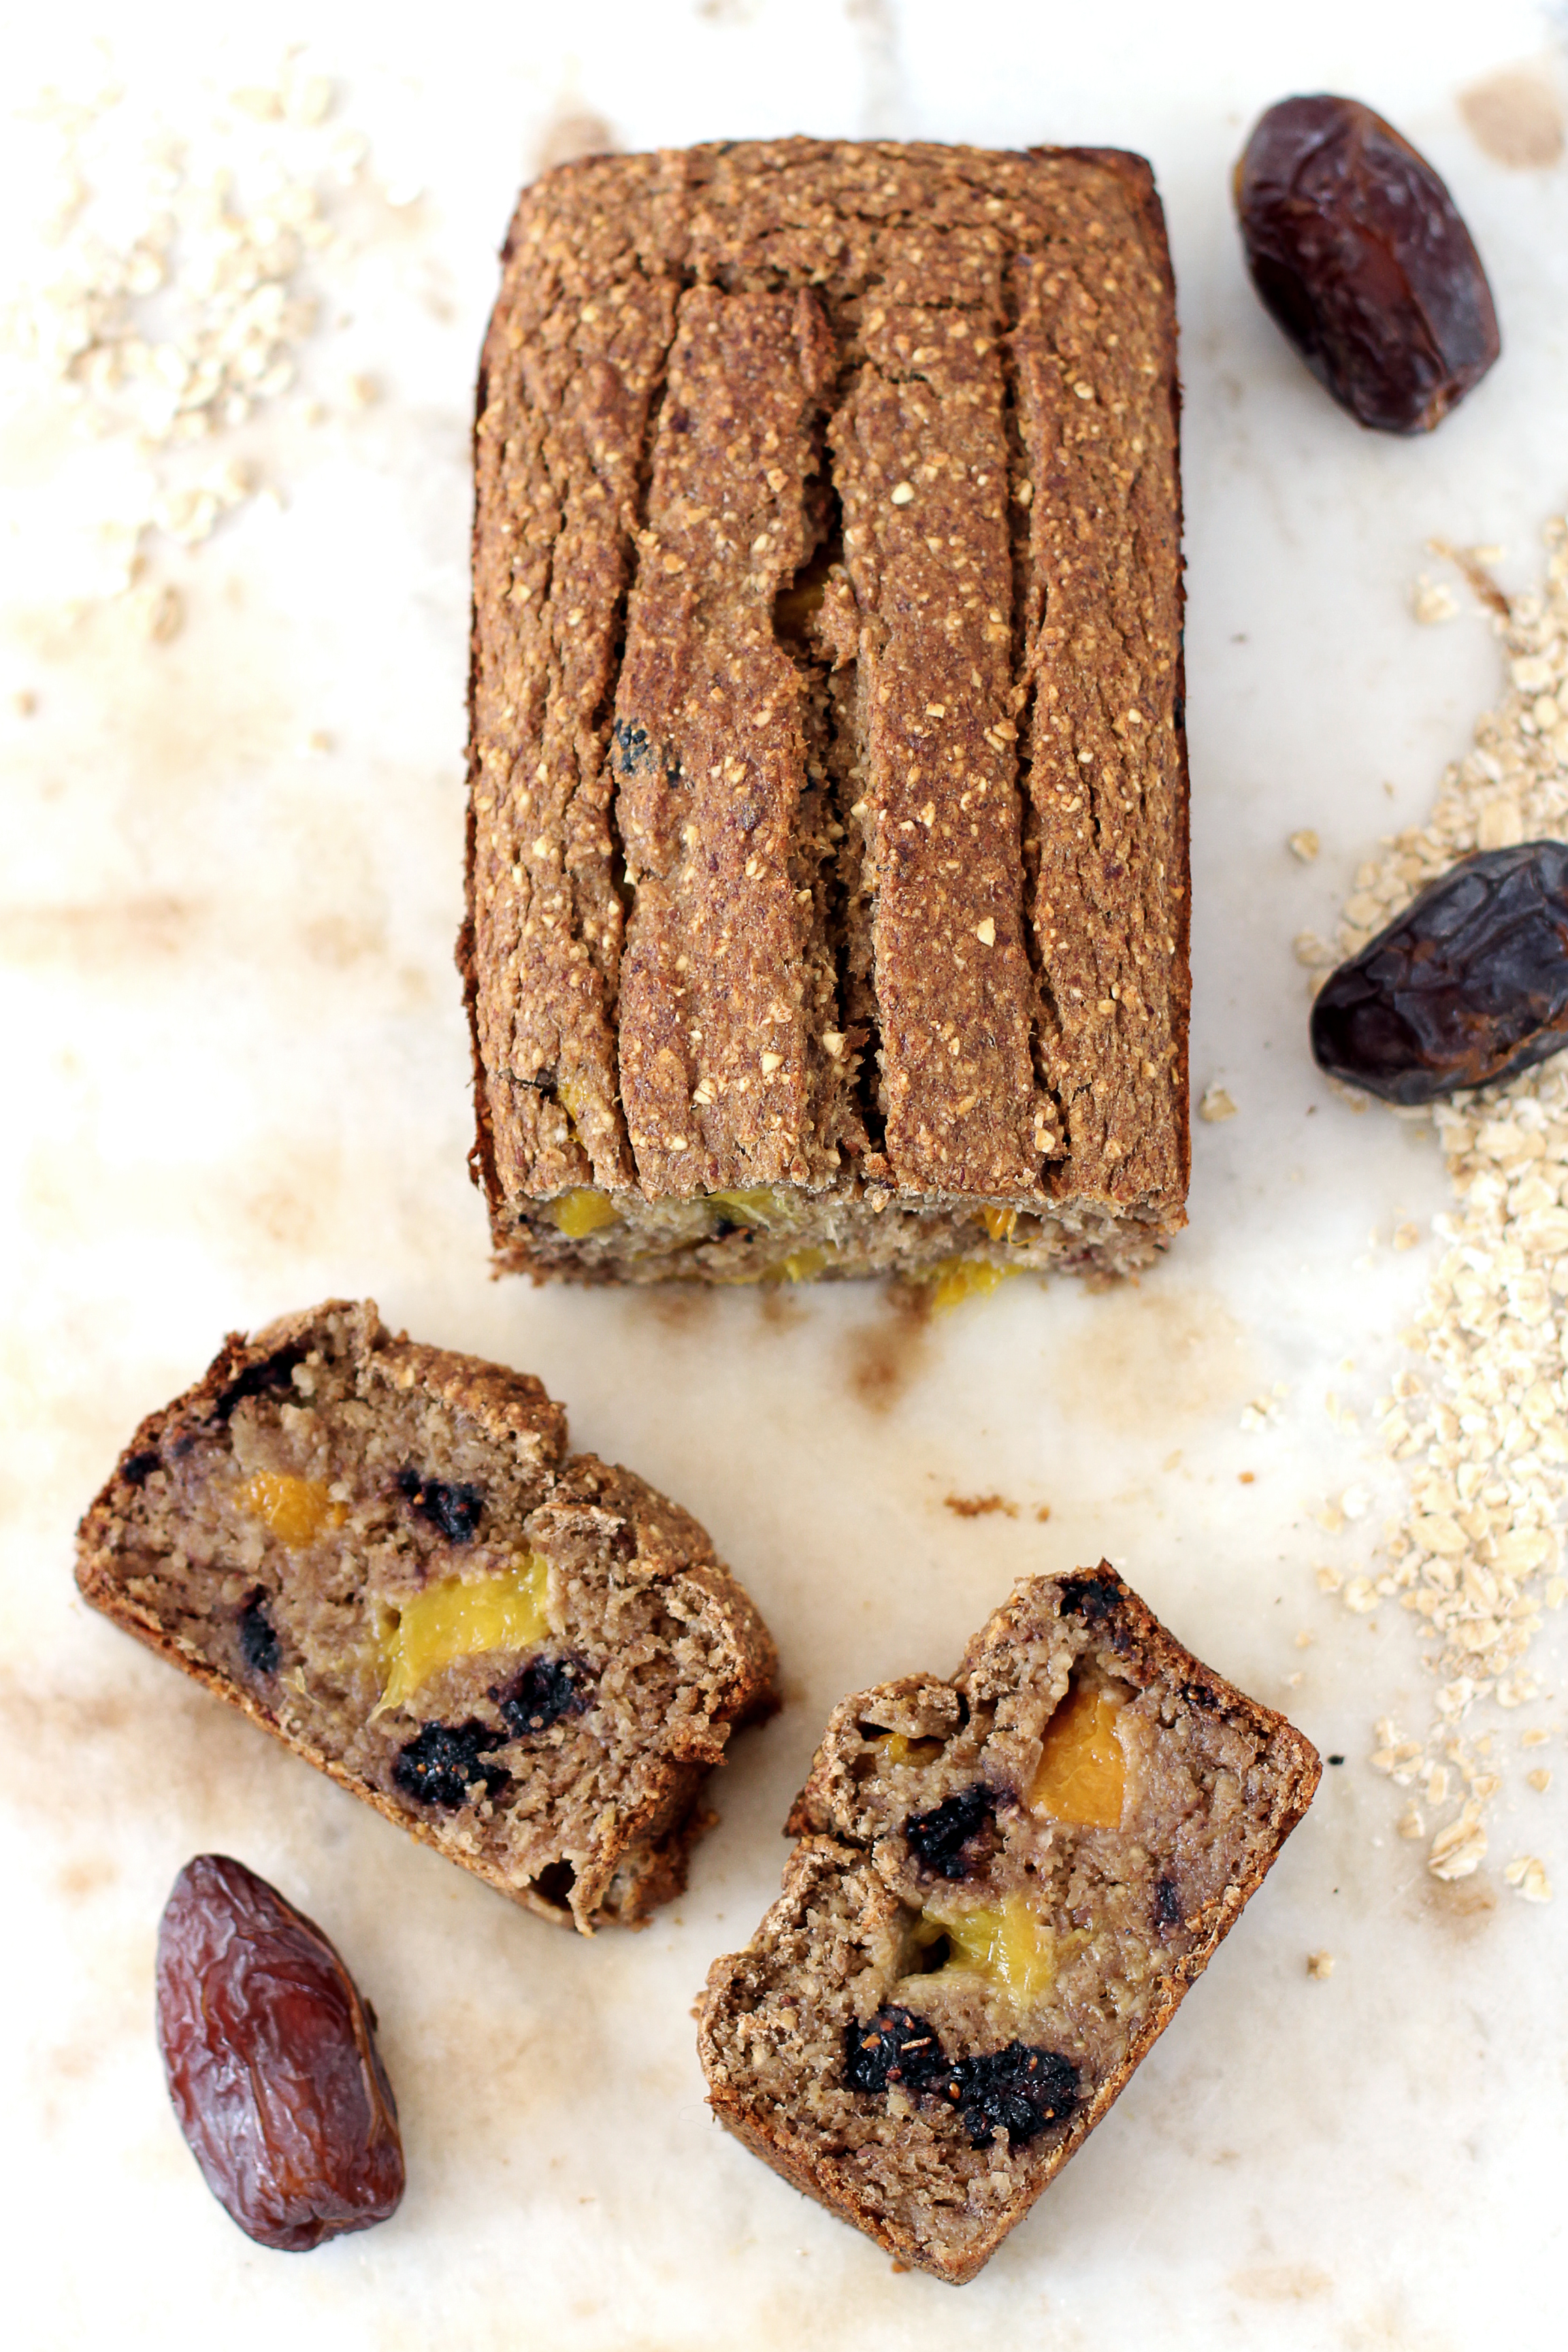 bananen-mango-brood-vegan-recept2